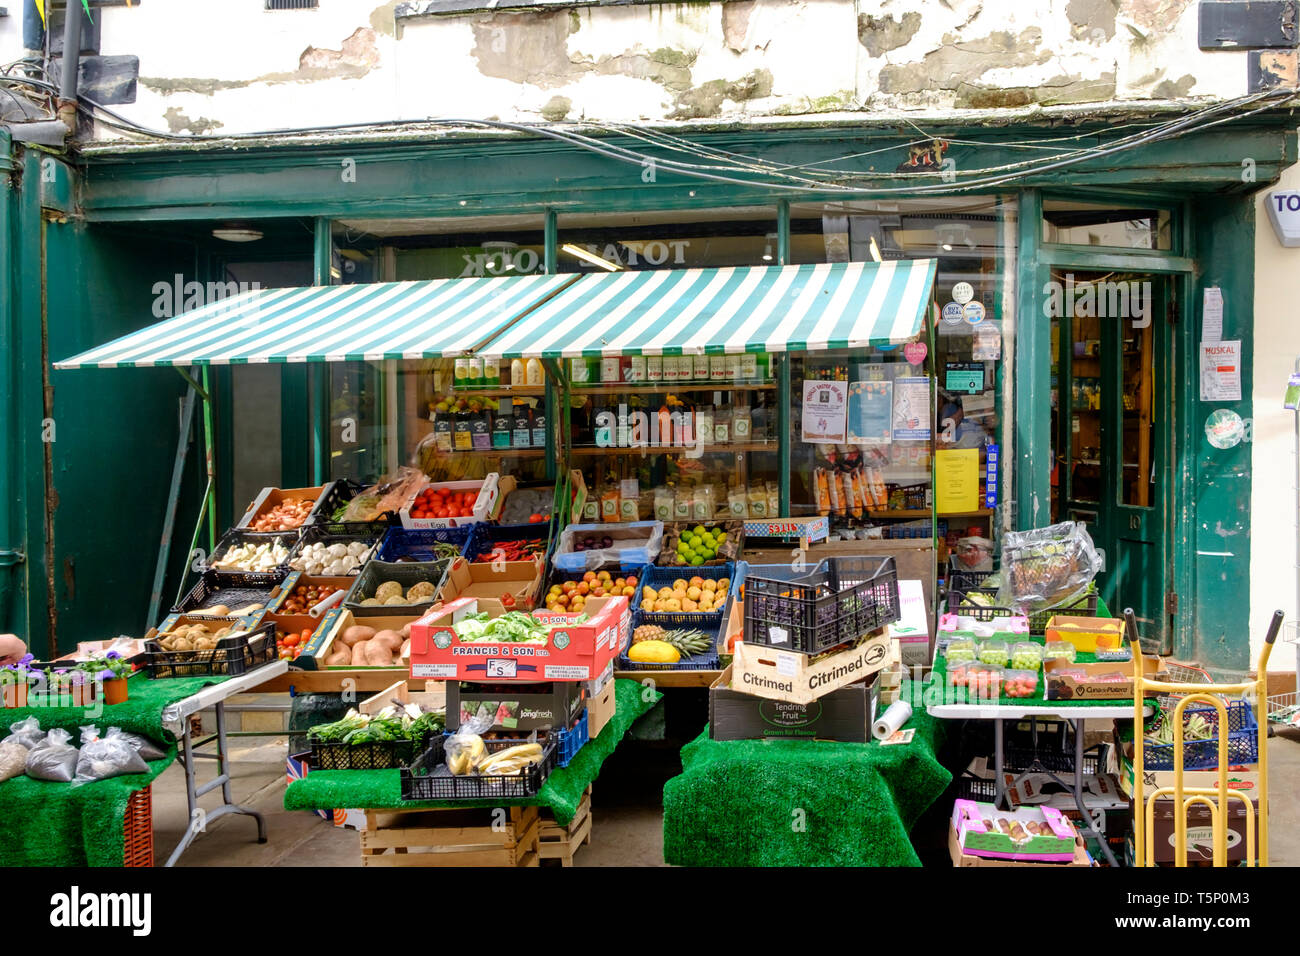 Around Monmouth a historic town in Monmouthshire Wales UK Church st Munday and Jones Greengrocers - Stock Image